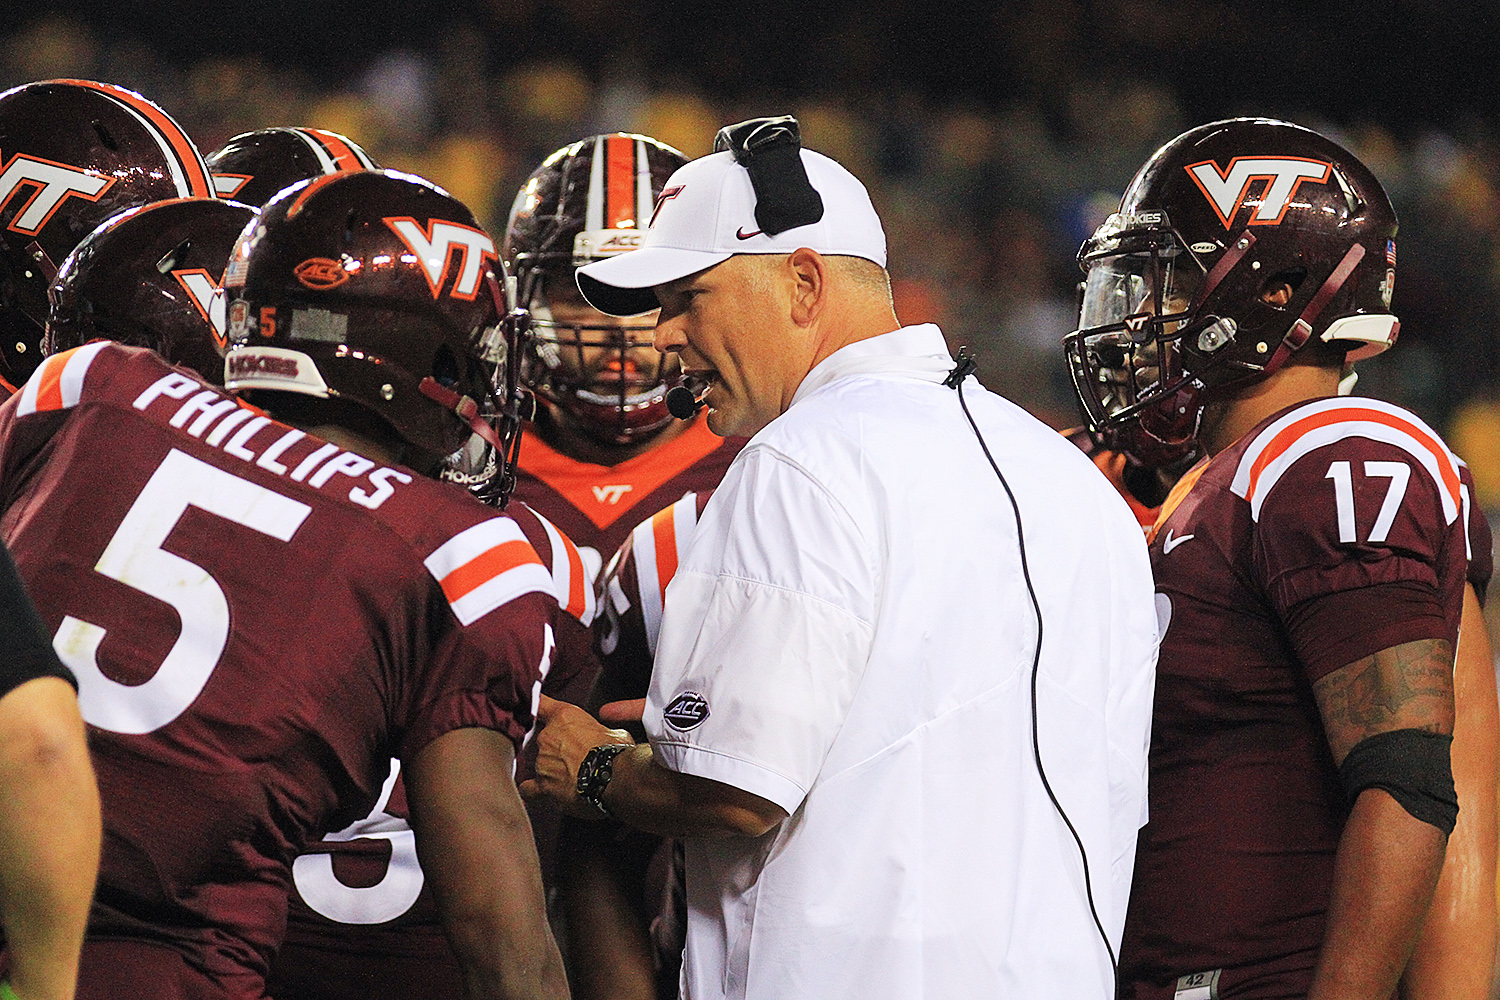 Virginia Tech football